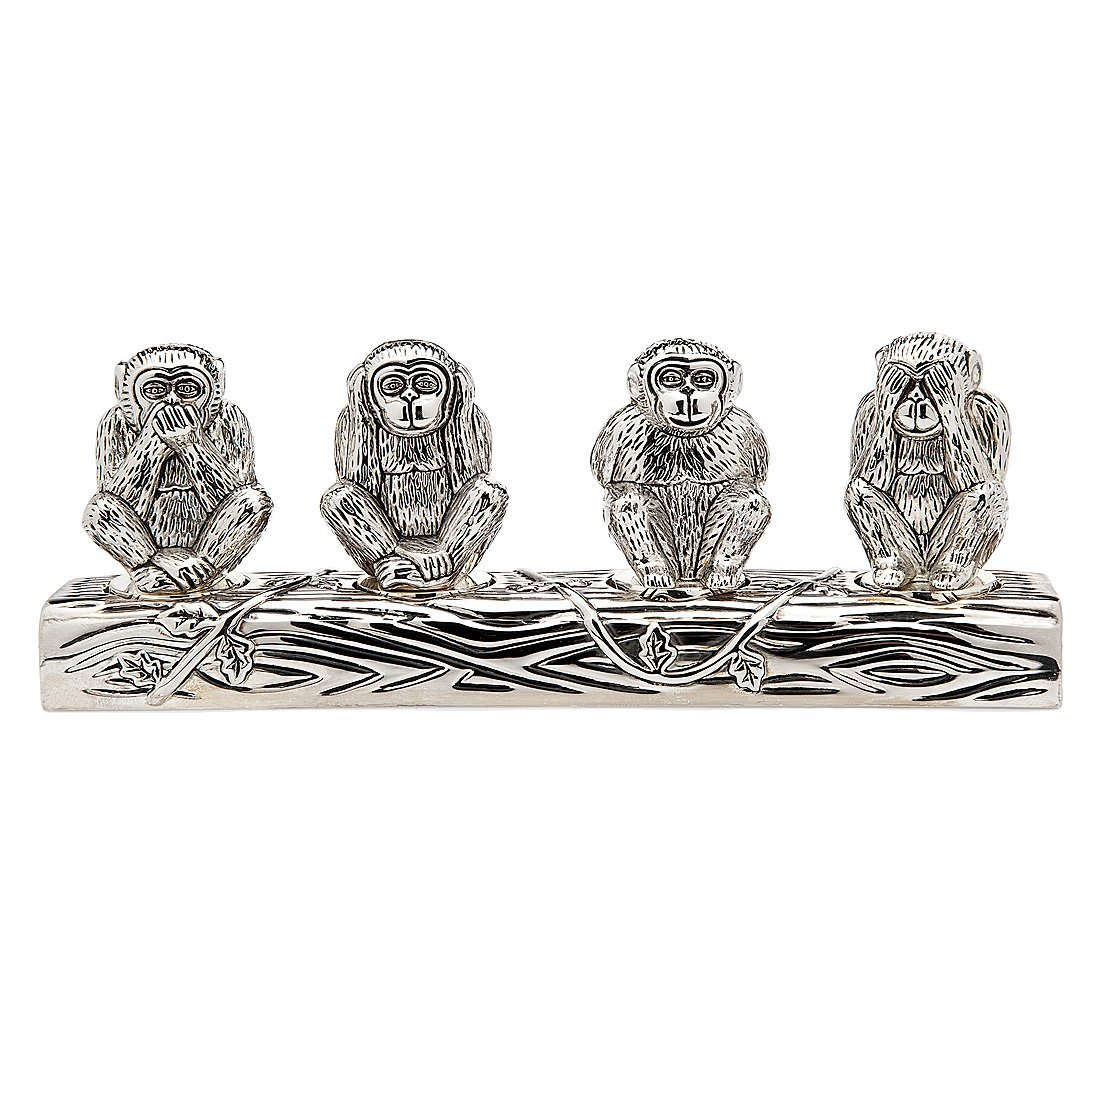 Monkey Salt & Pepper (Set of 4)